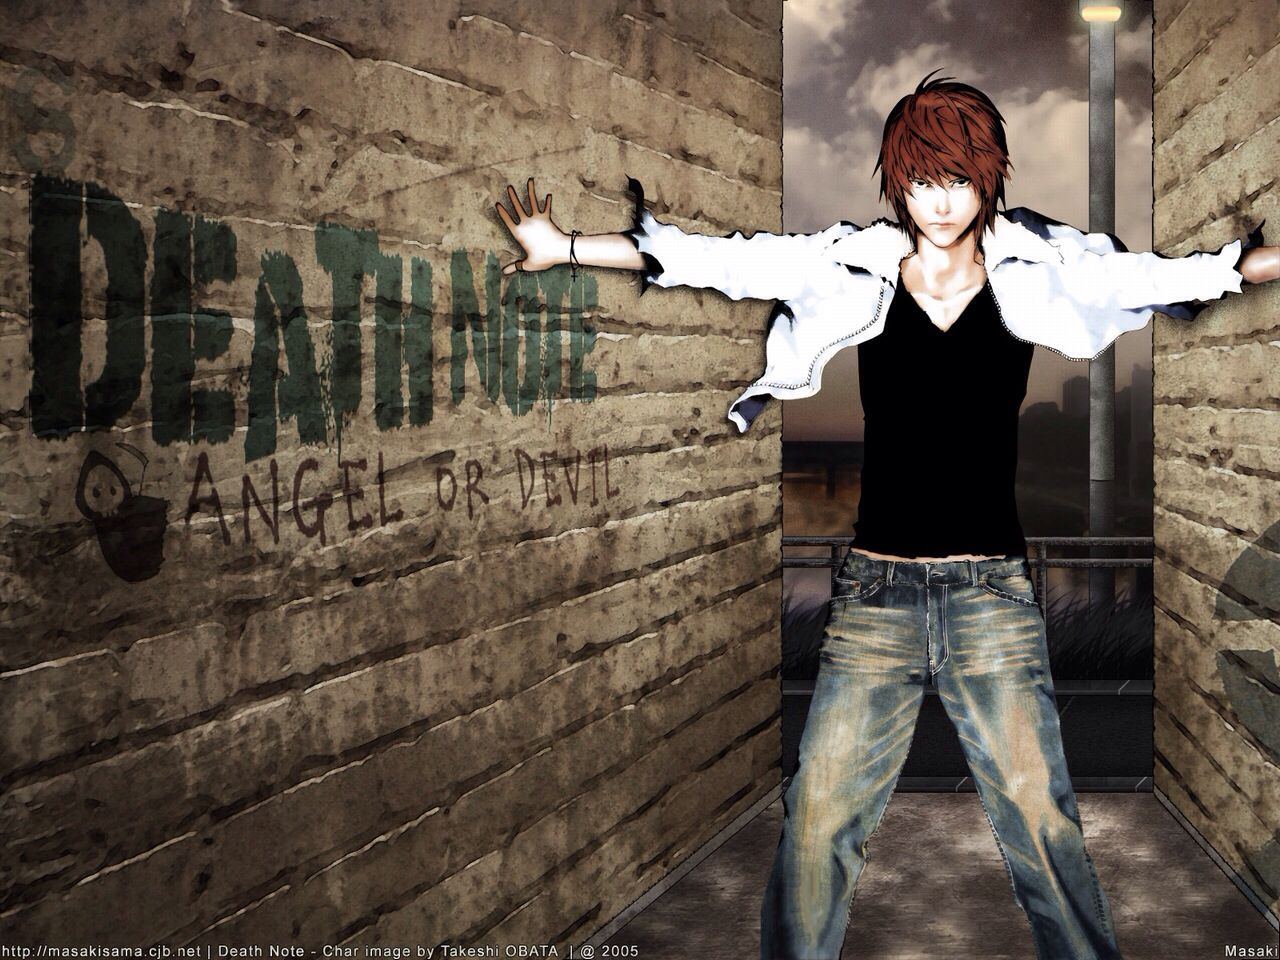 Day  Best Anime Villain Light Yagami Is Possibly The Smartest Anime Villain I Have Seen In A While I Love The Game He And L Played Later With Mello And